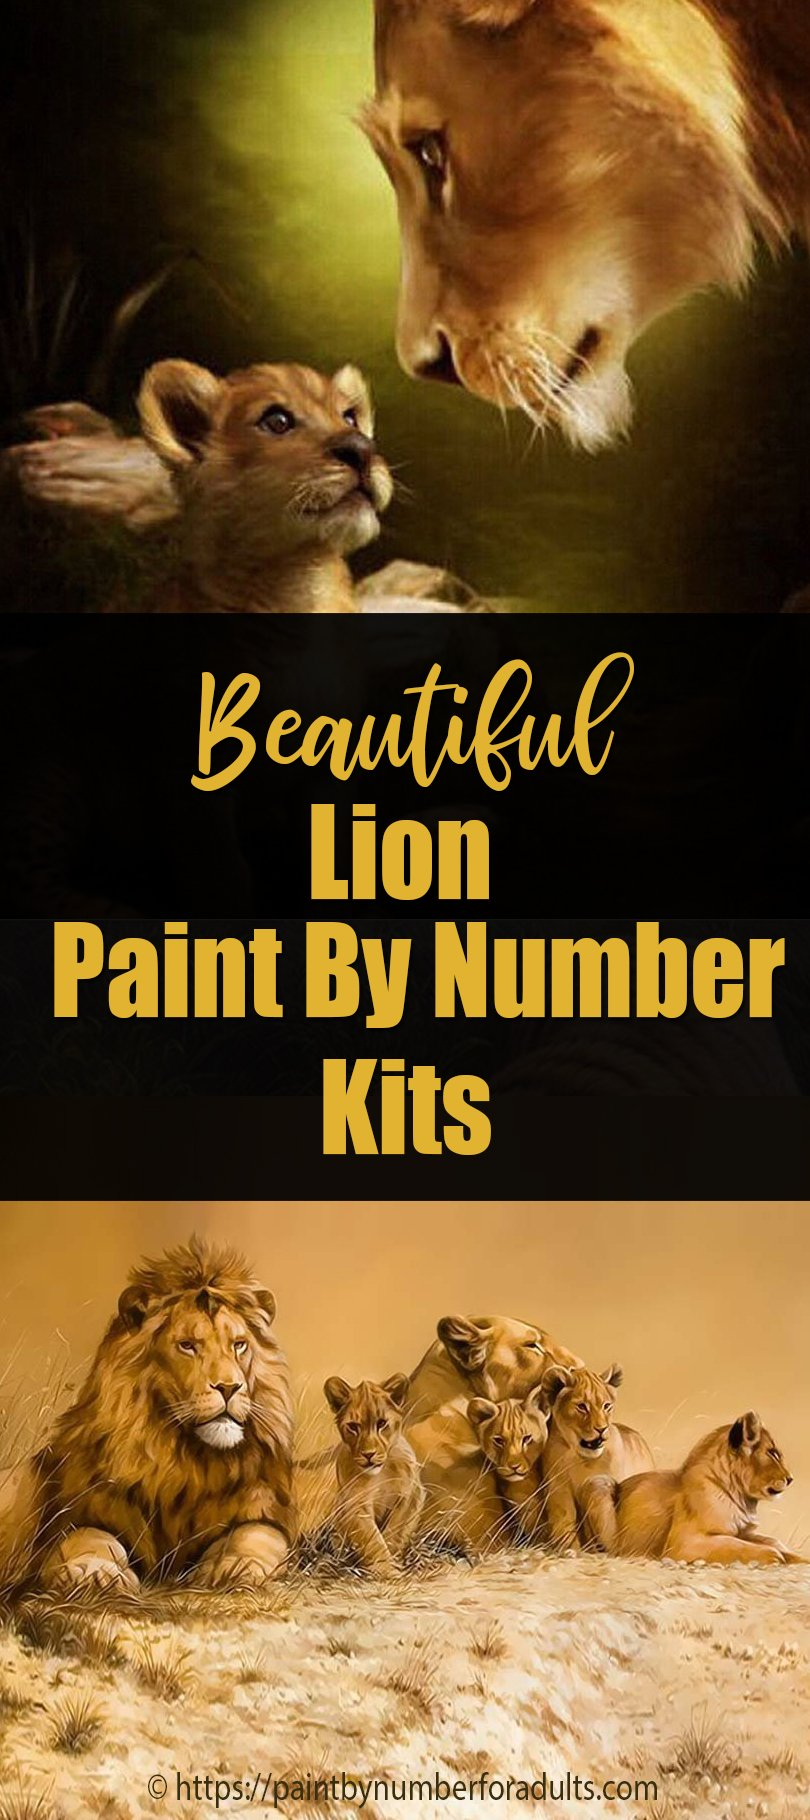 lion paint by number kits